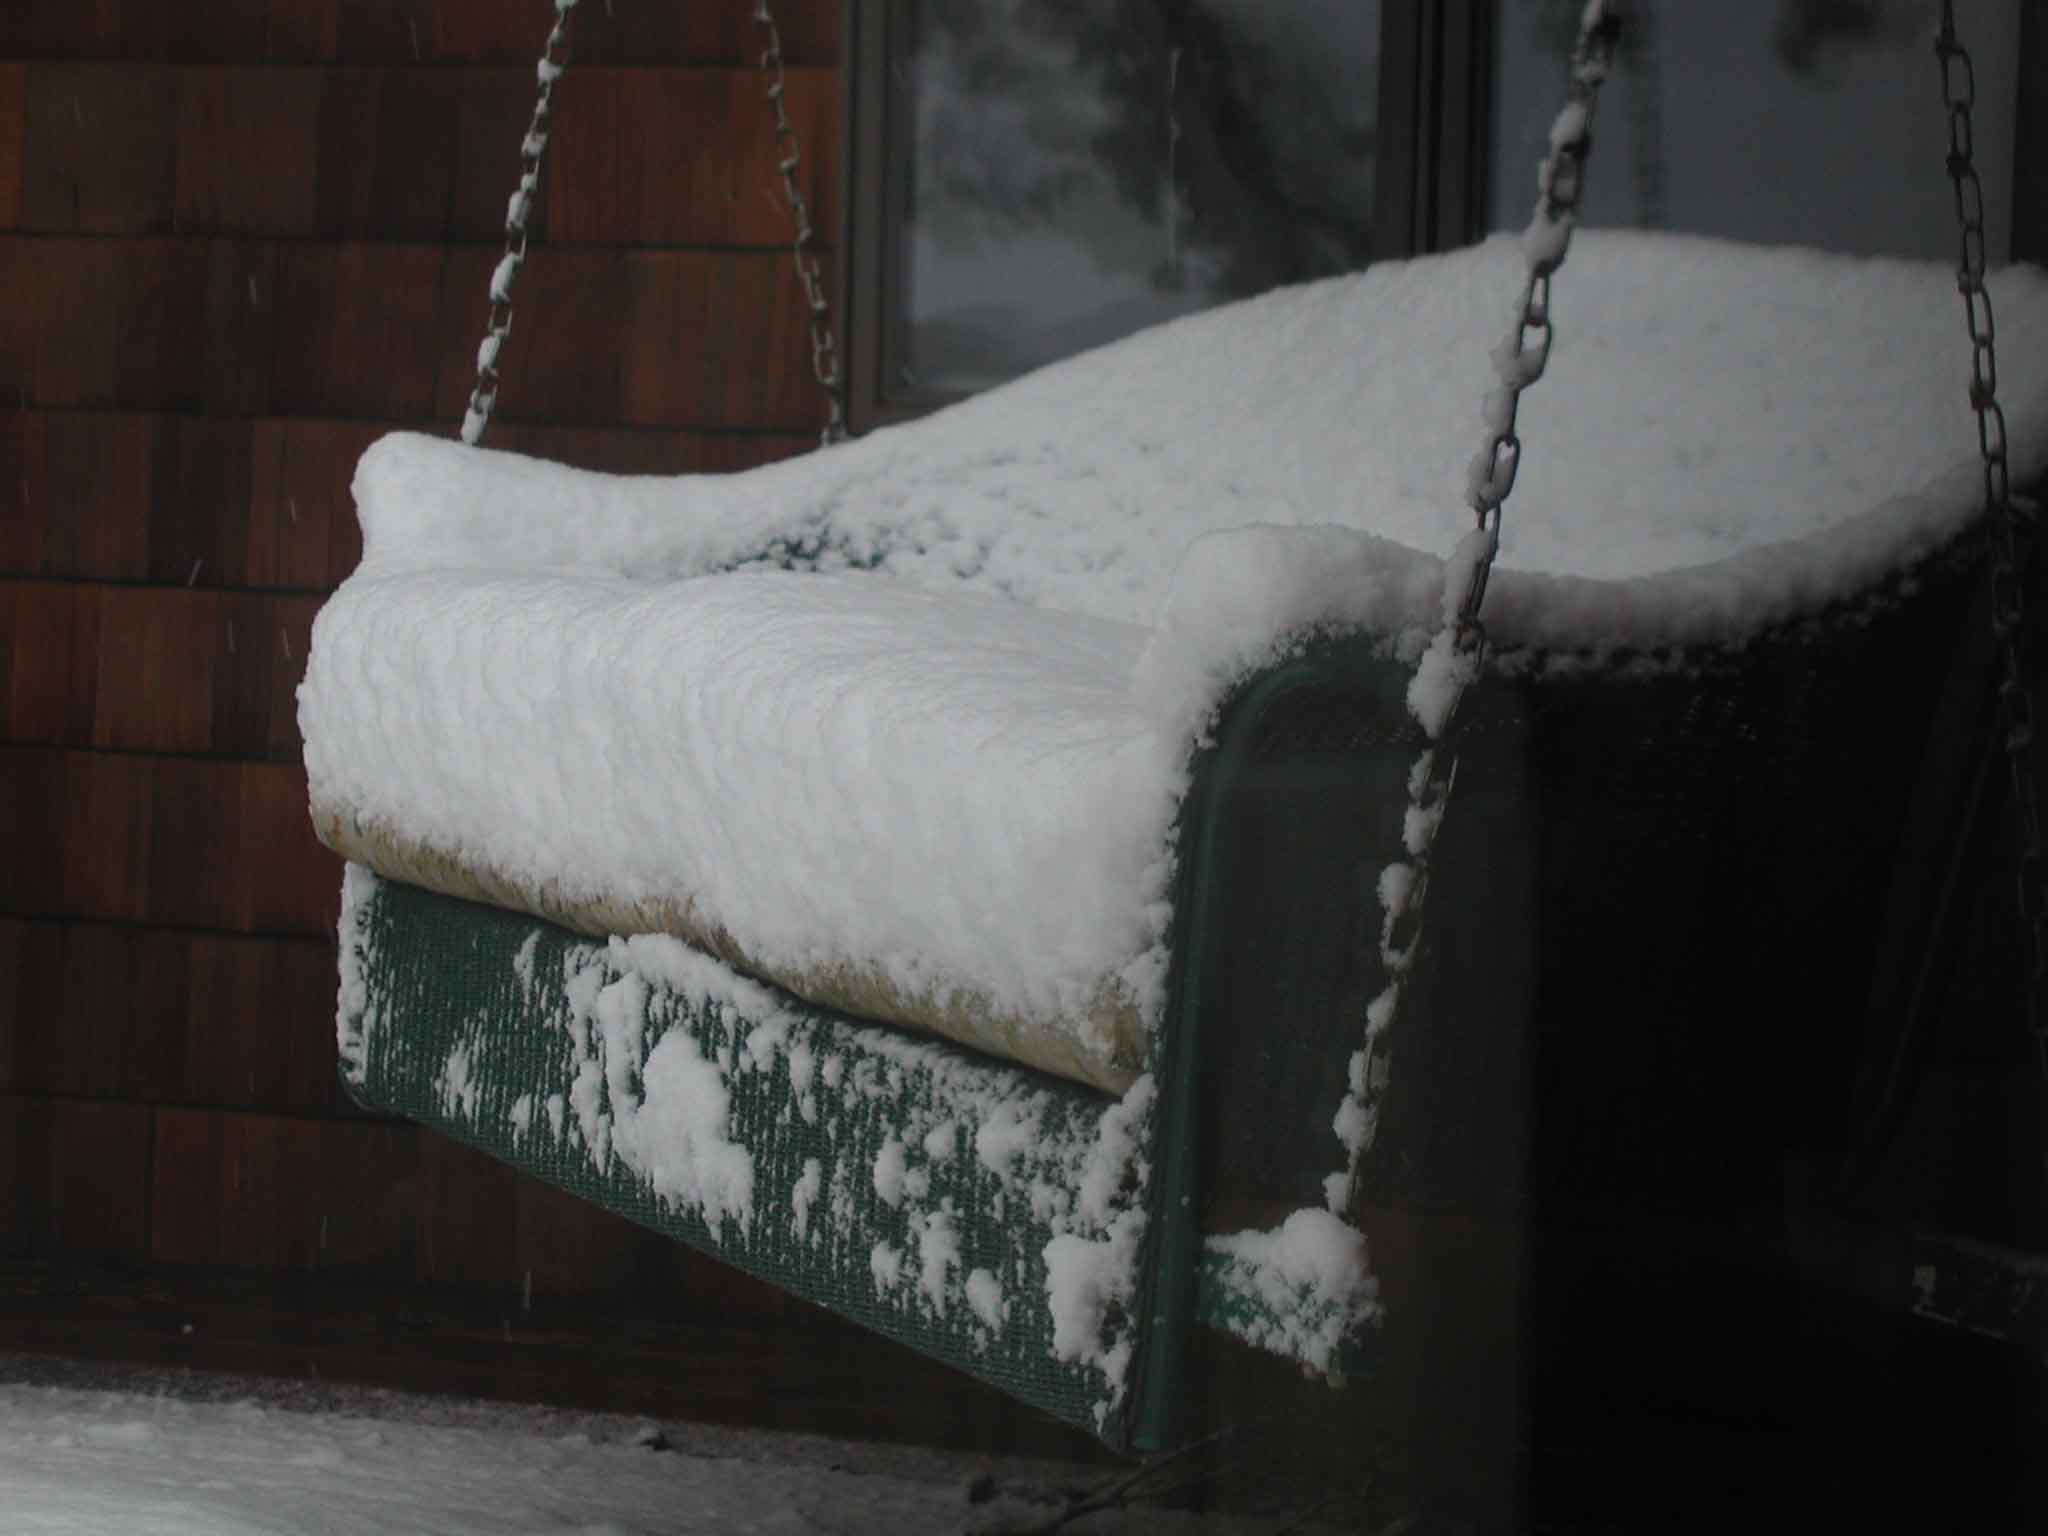 Snow on the Porch Swing